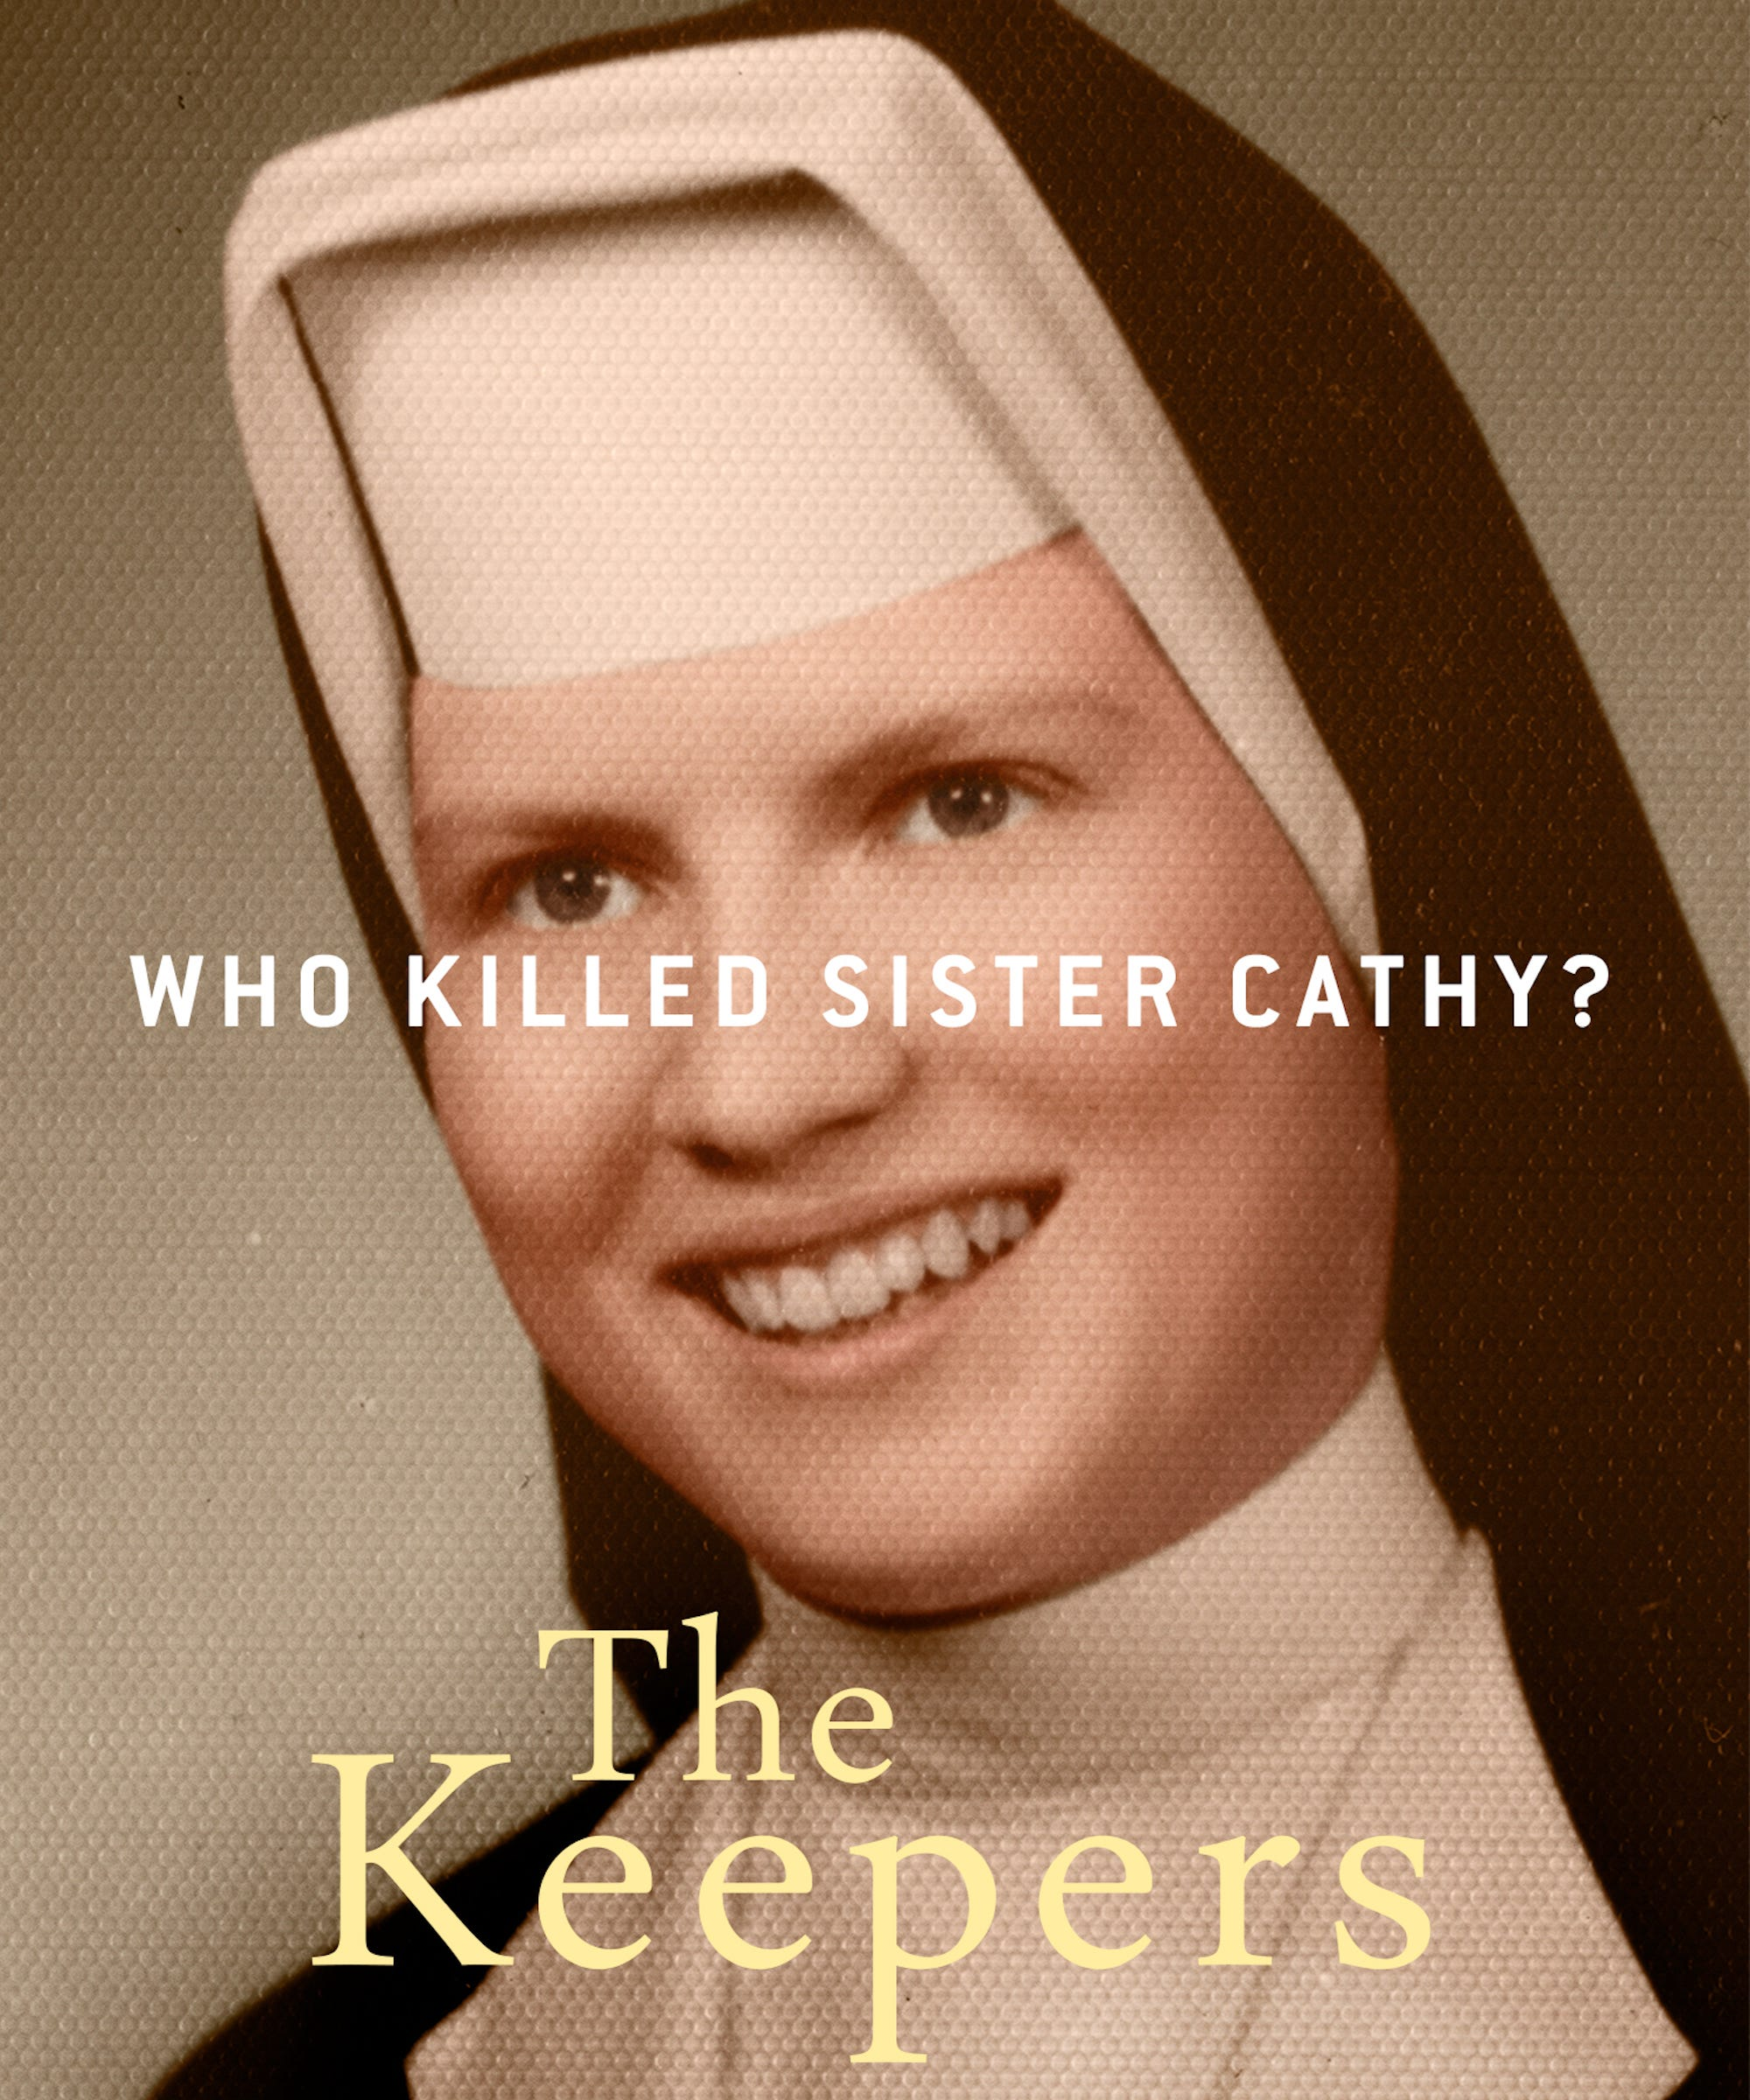 Image result for who killed sister cathy